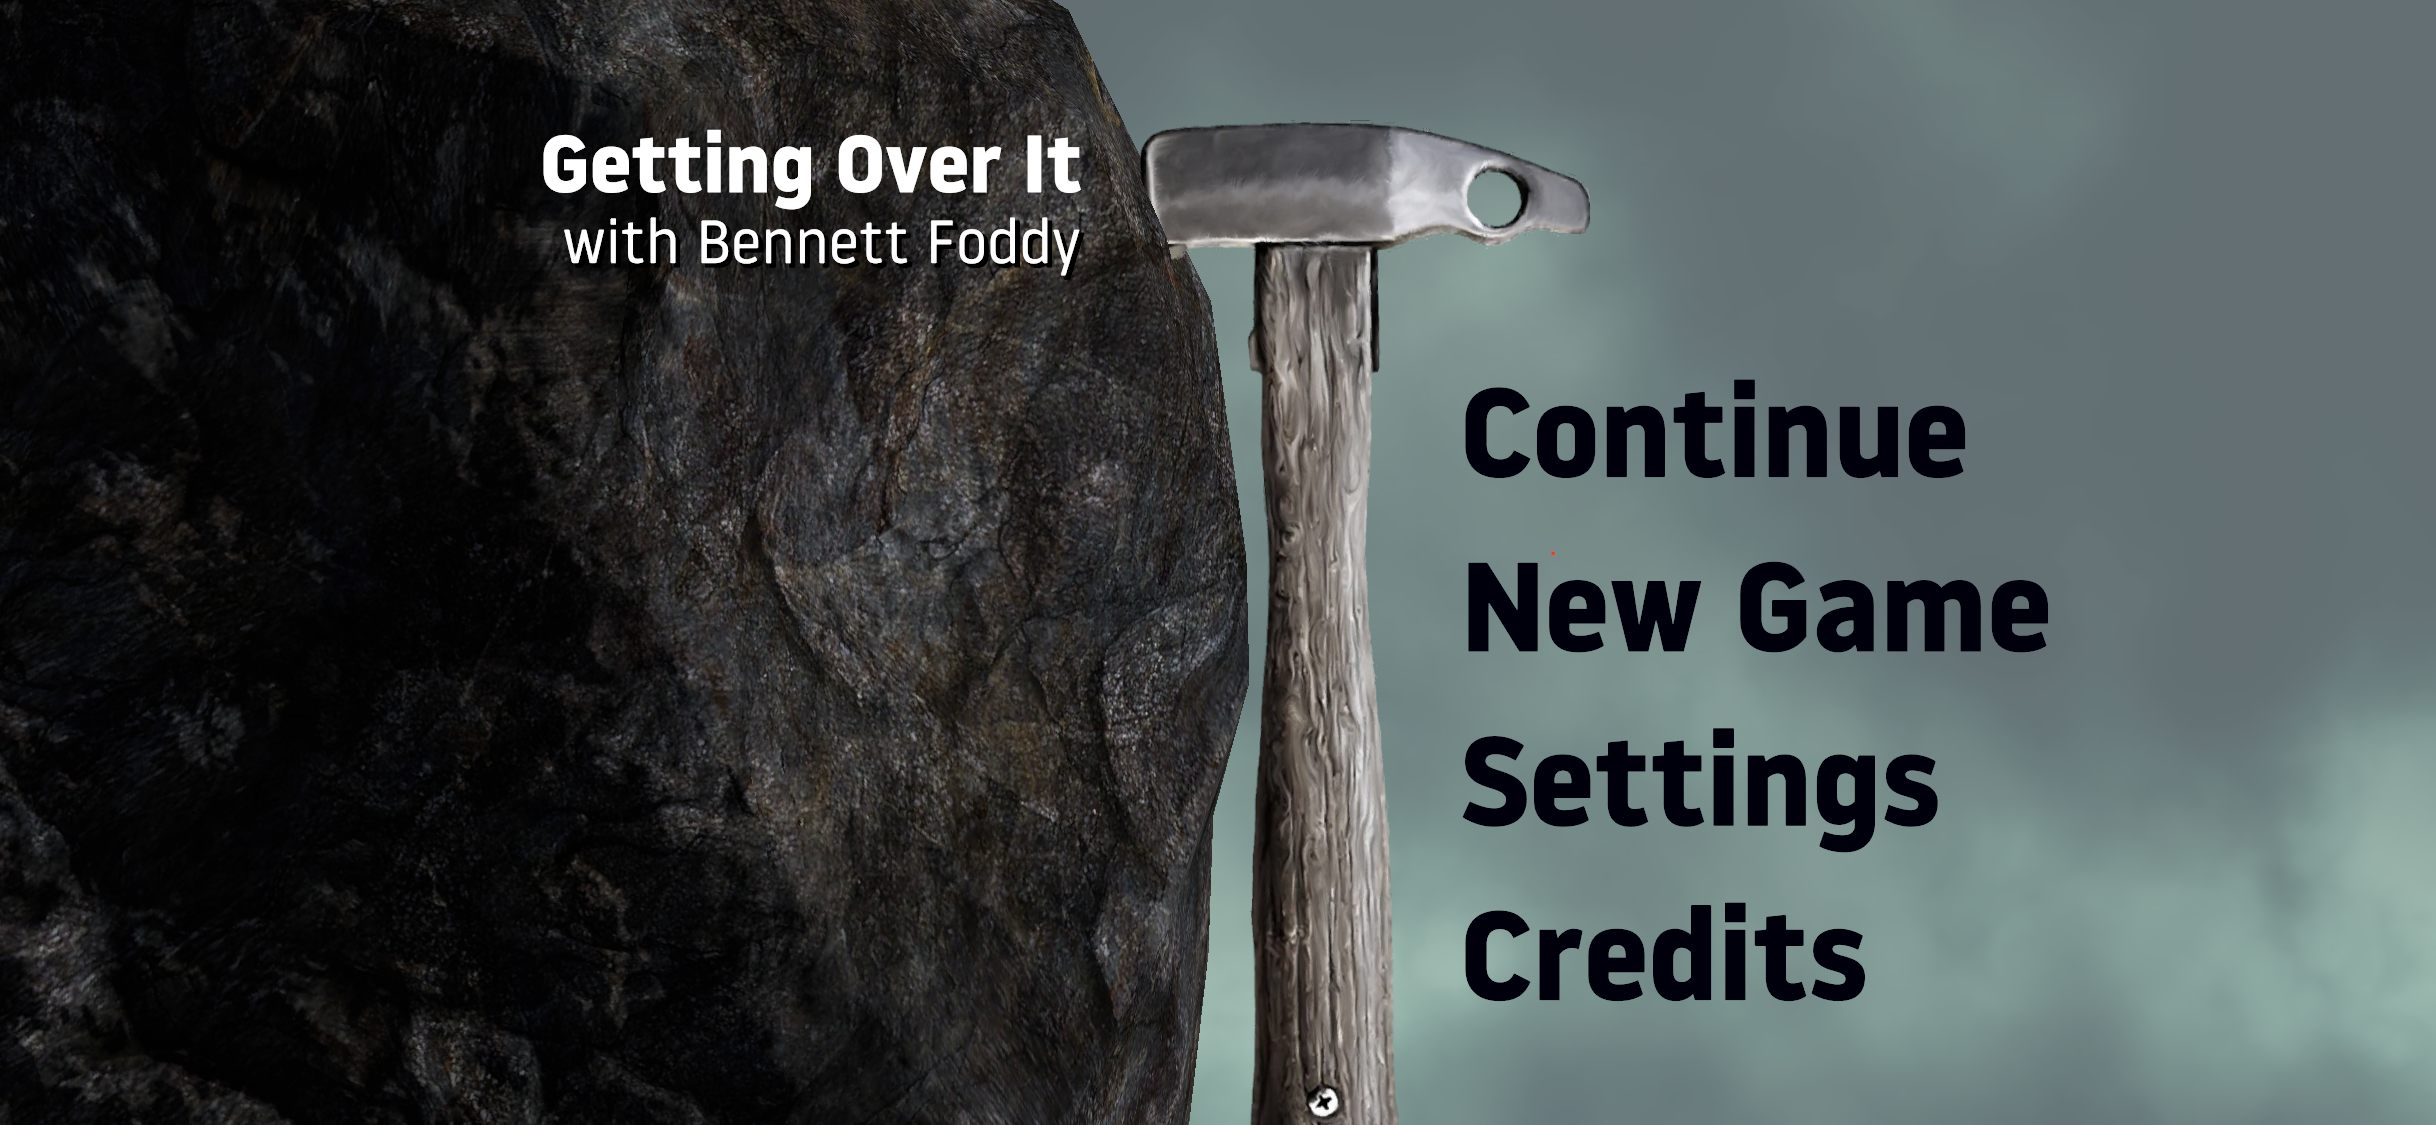 getting over it with bennett foddy mobile free download